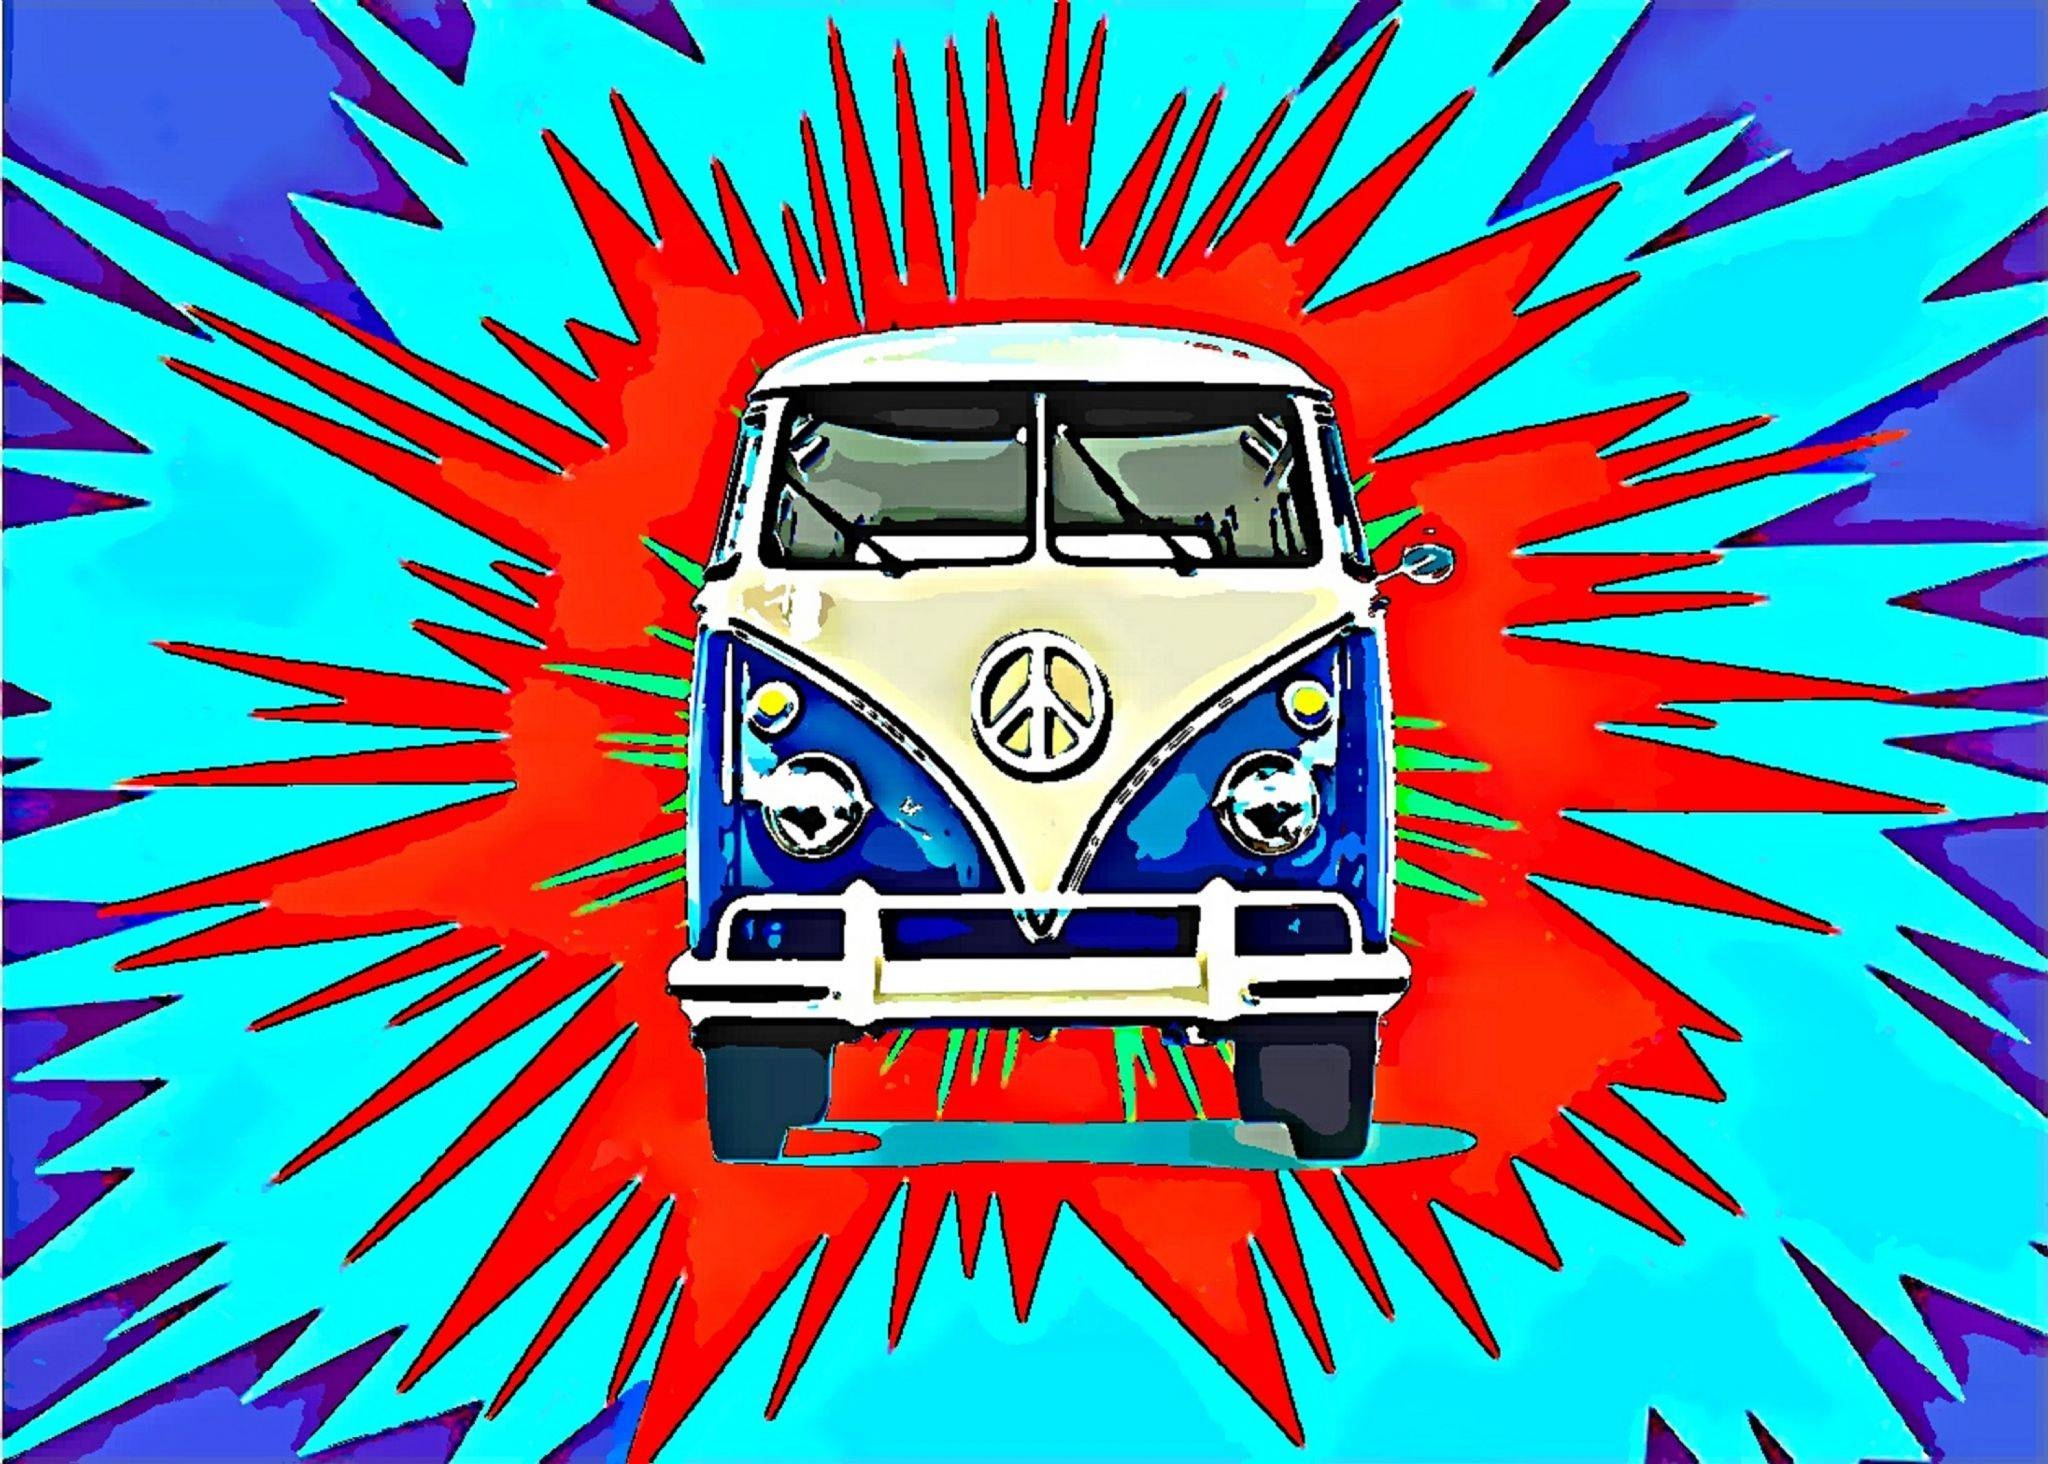 Camper Van Volkswagen Explosion Metal Wall Plaque From My Original Throughout 2017 Campervan Metal Wall Art (View 16 of 20)